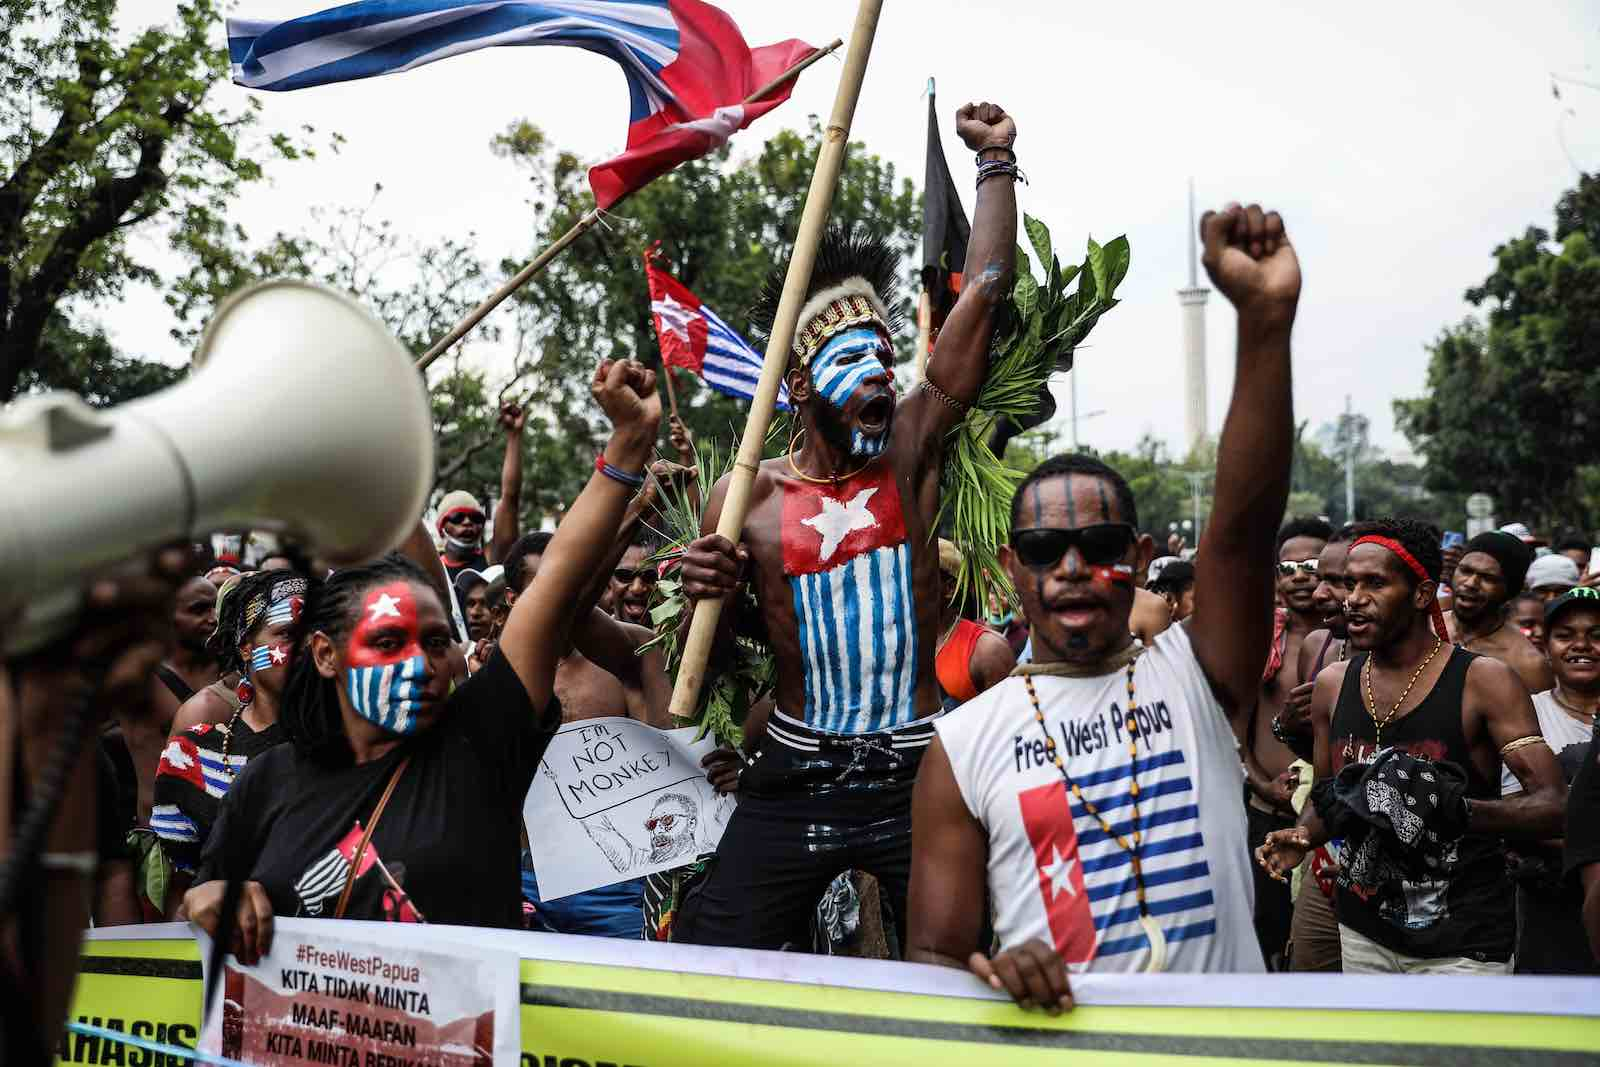 A rally in Jakarta supporting West Papua's call for independence from Indonesia, 28 August 2019 (Andrew Gal/NurPhoto via Getty Images)